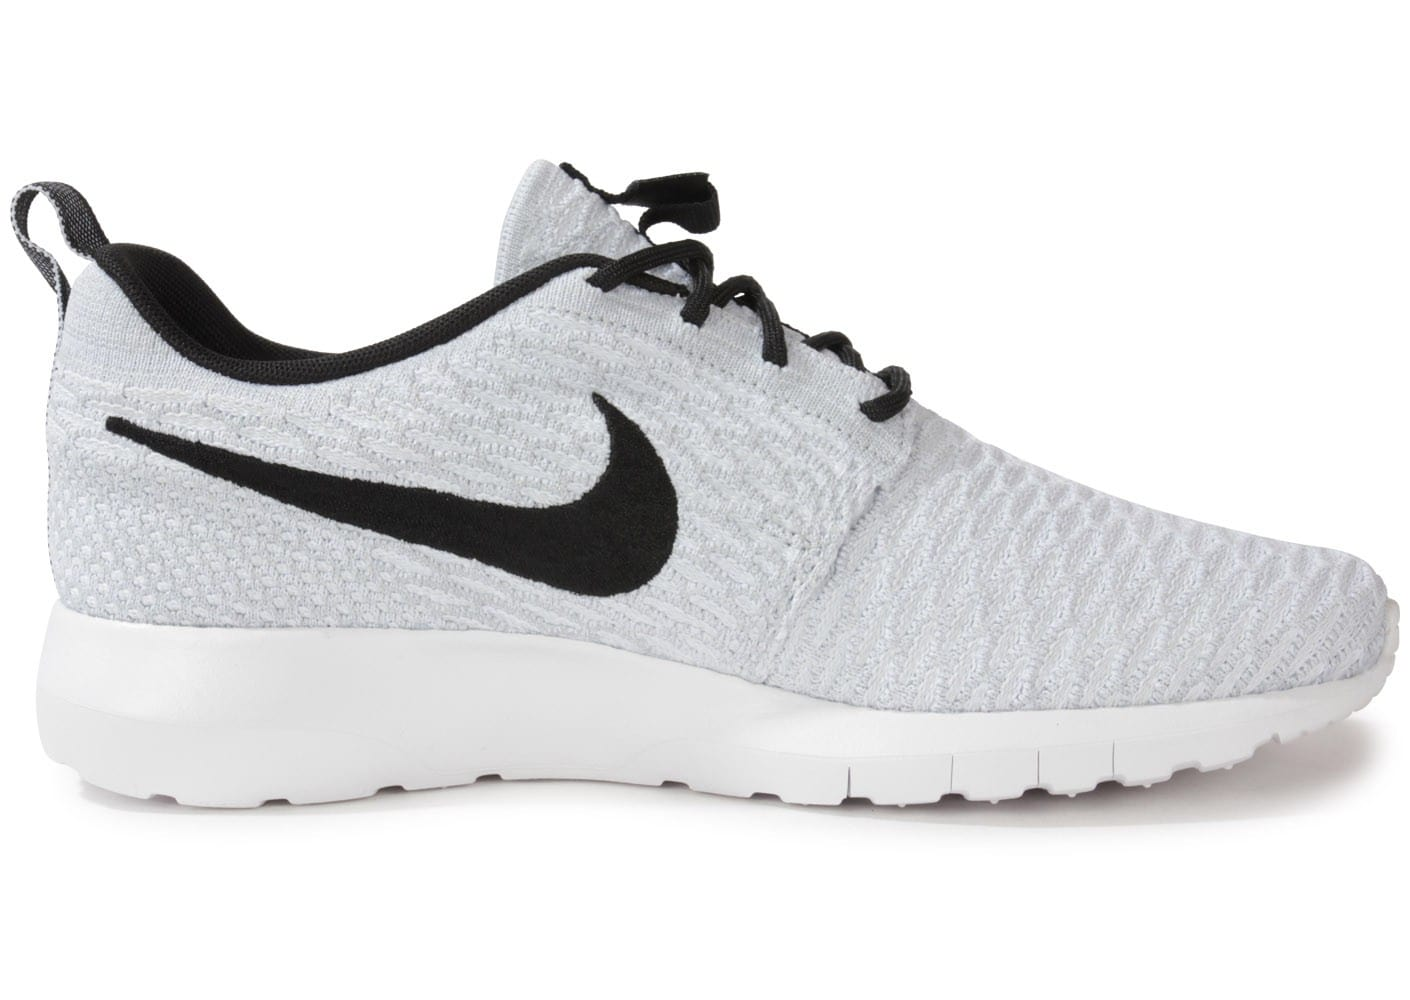 nike roshe run flyknit blanche chaussures homme chausport. Black Bedroom Furniture Sets. Home Design Ideas